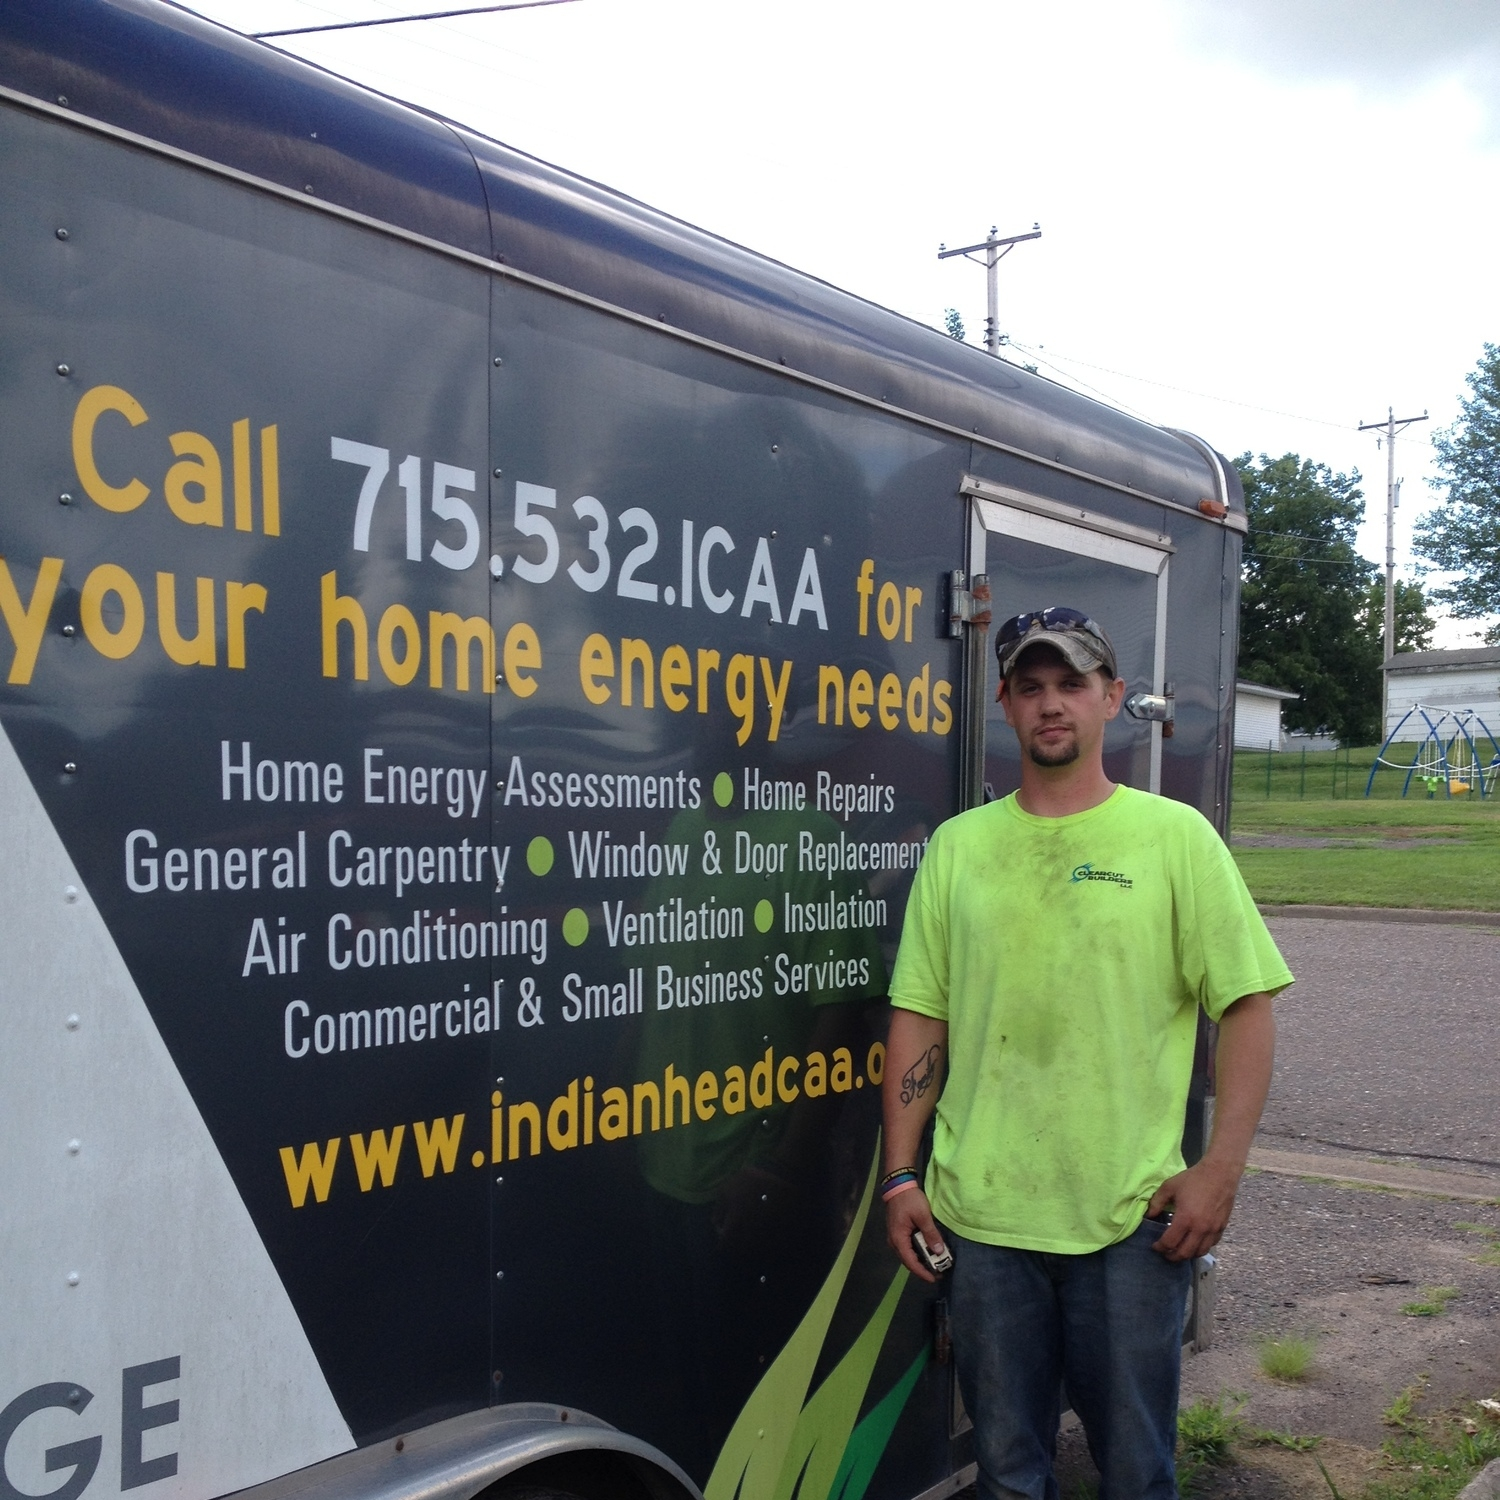 Stephen standing next to ICAA equipment trailer